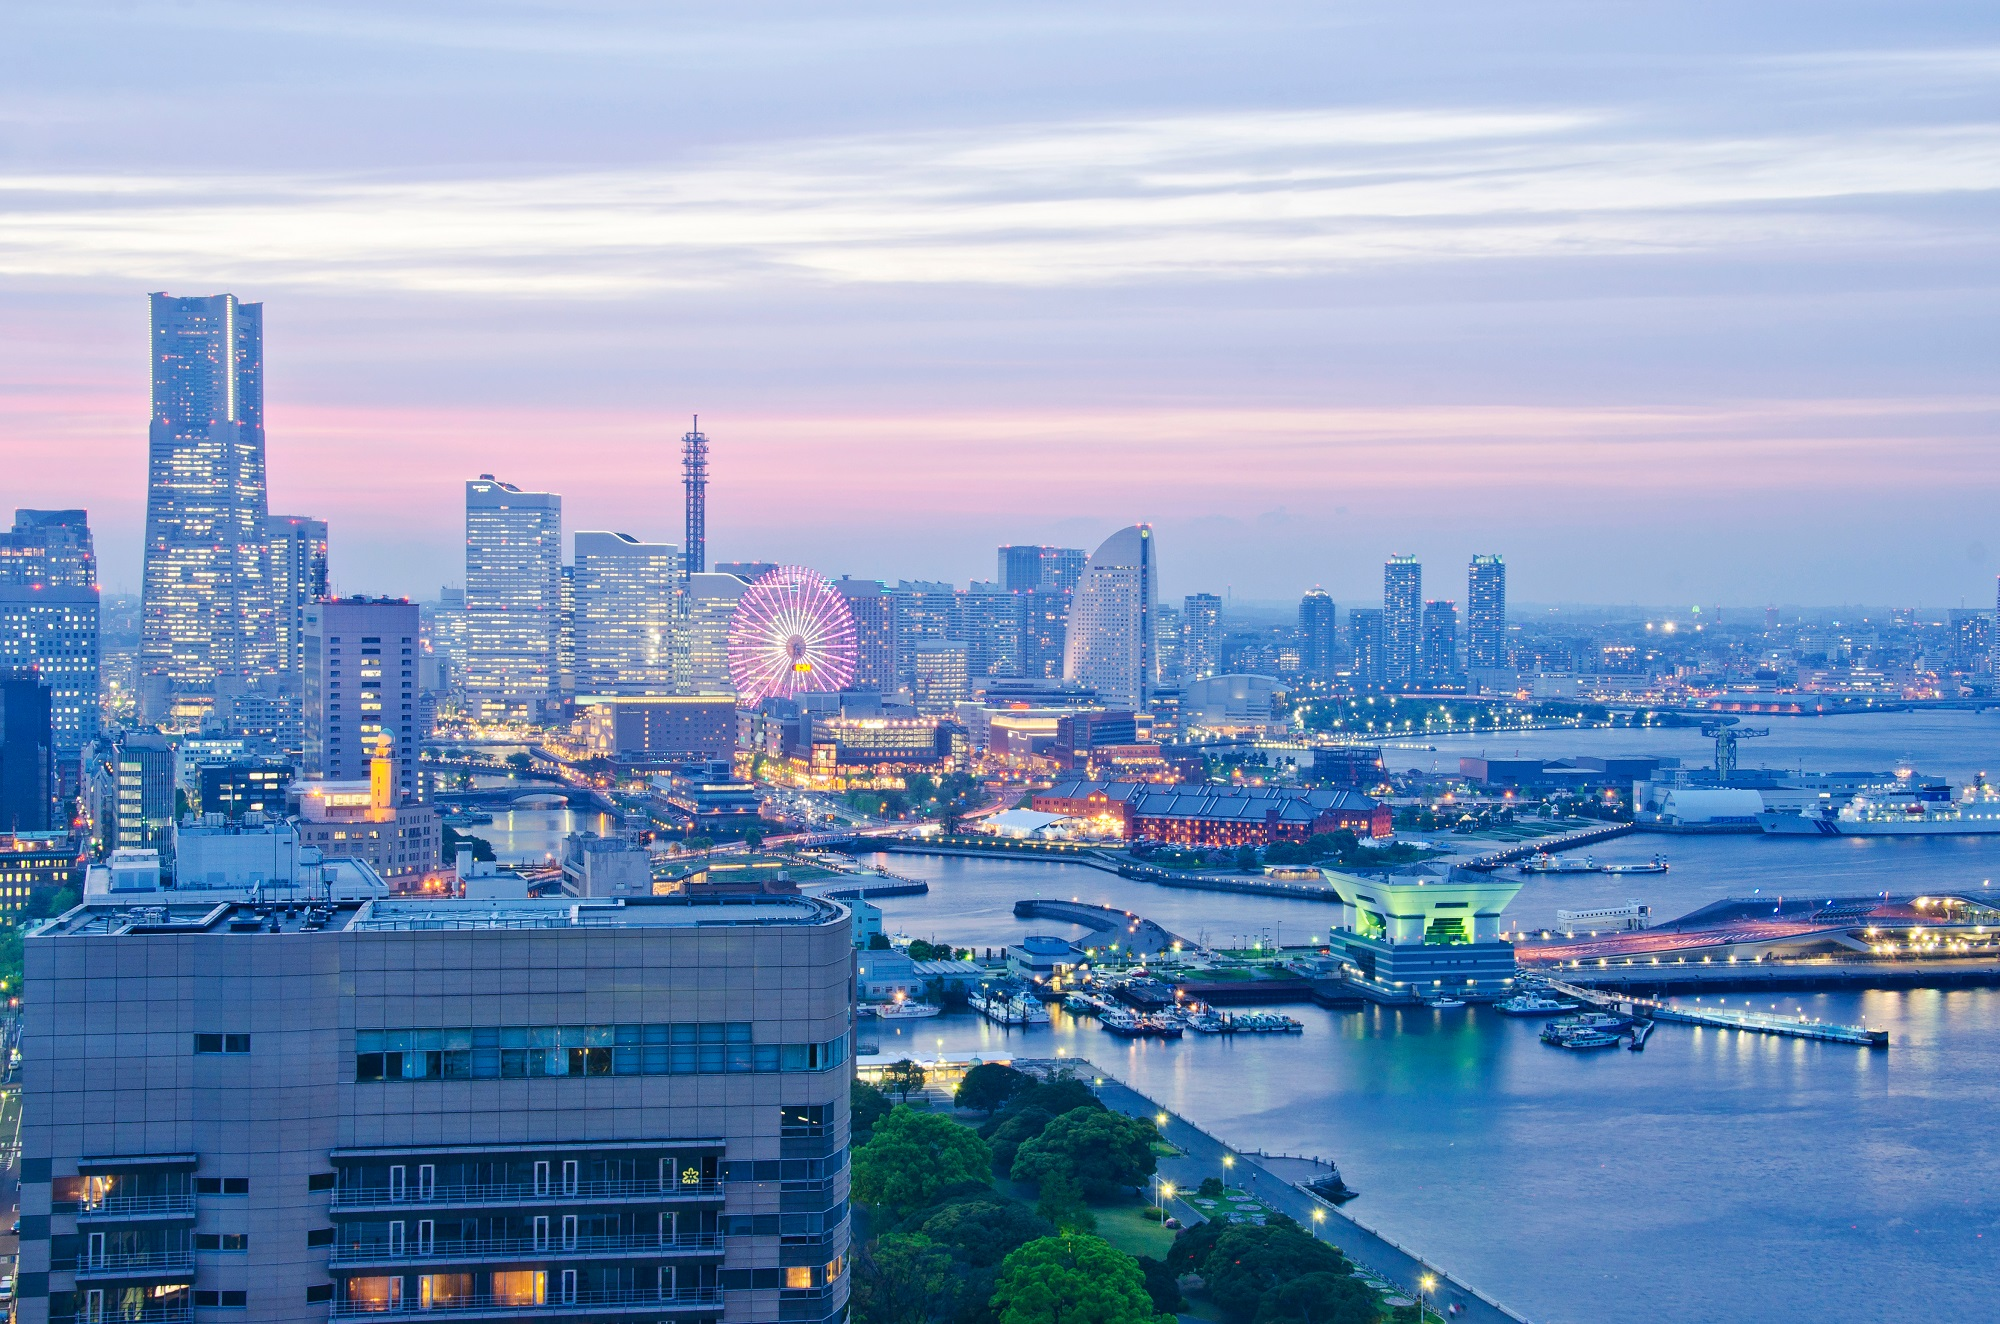 JOS – The 77th Annual Meeting of the Japanese Orthodontic Society 2018